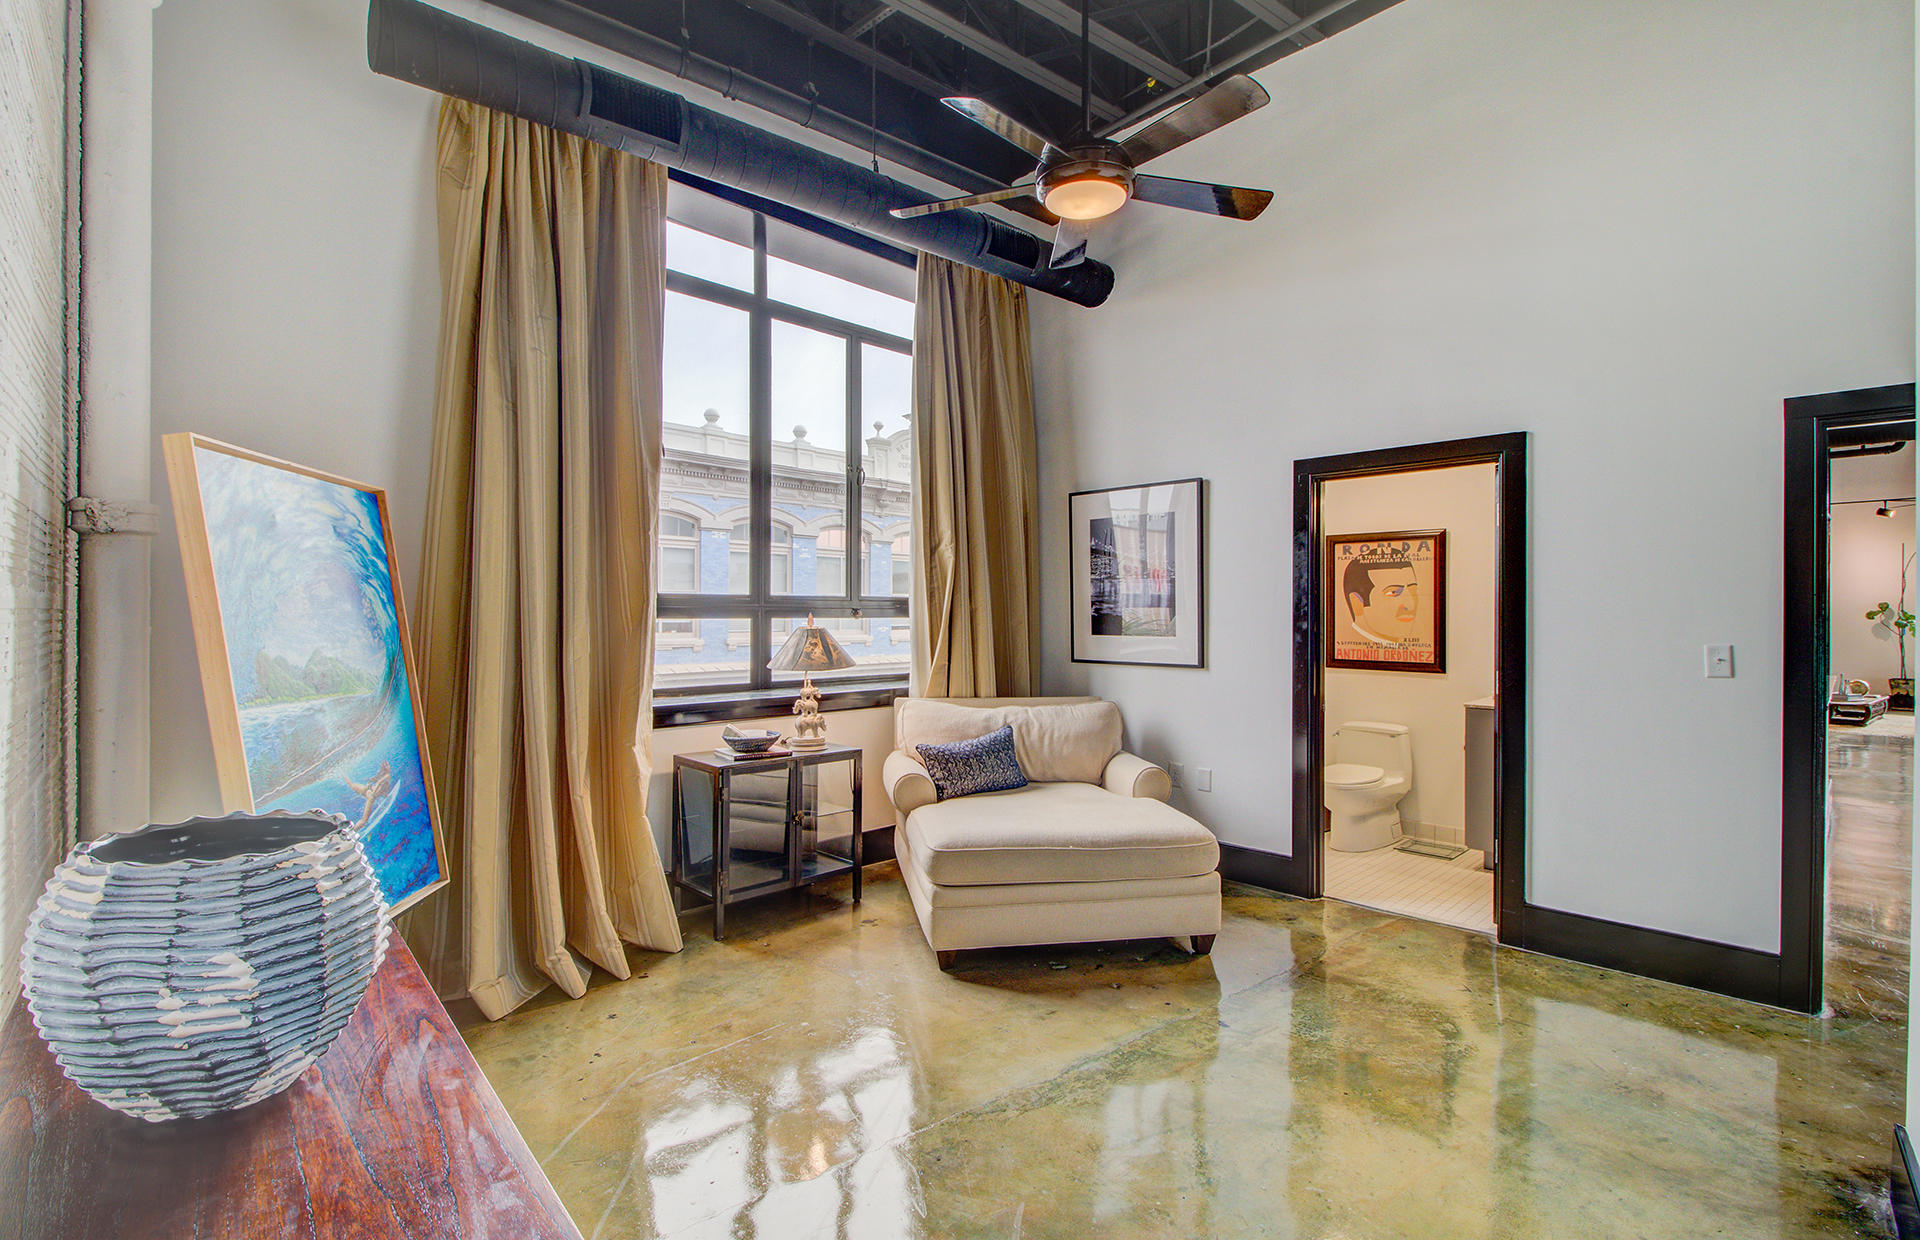 King Street Lofts Homes For Sale - 517 King, Charleston, SC - 5